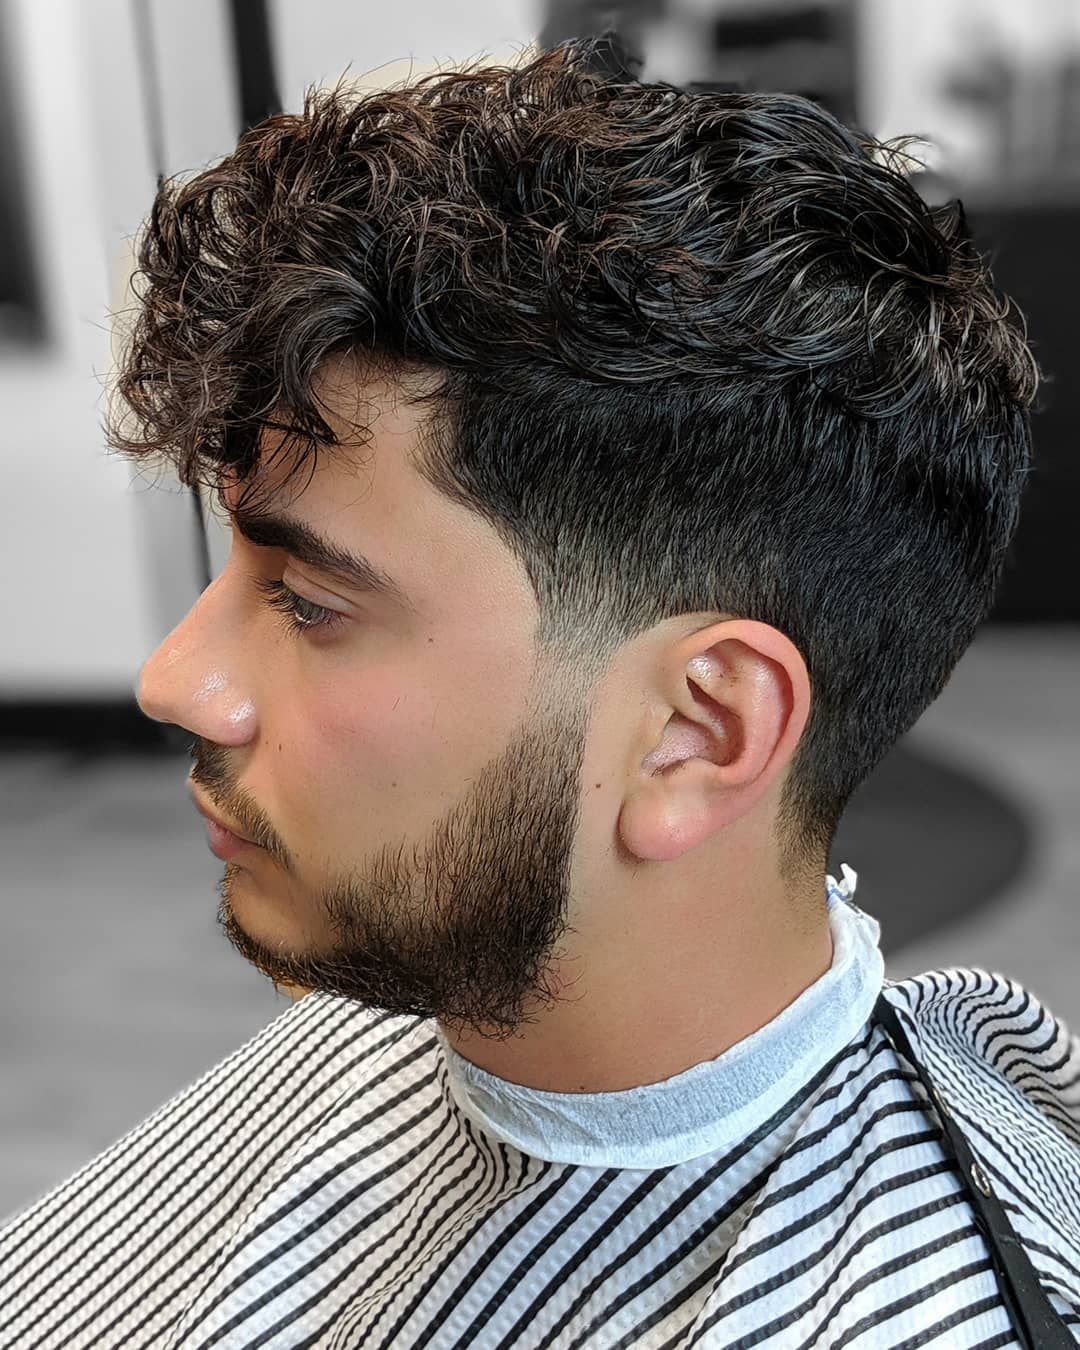 Pin on Men's Styles & Hair Products Mobile Barber